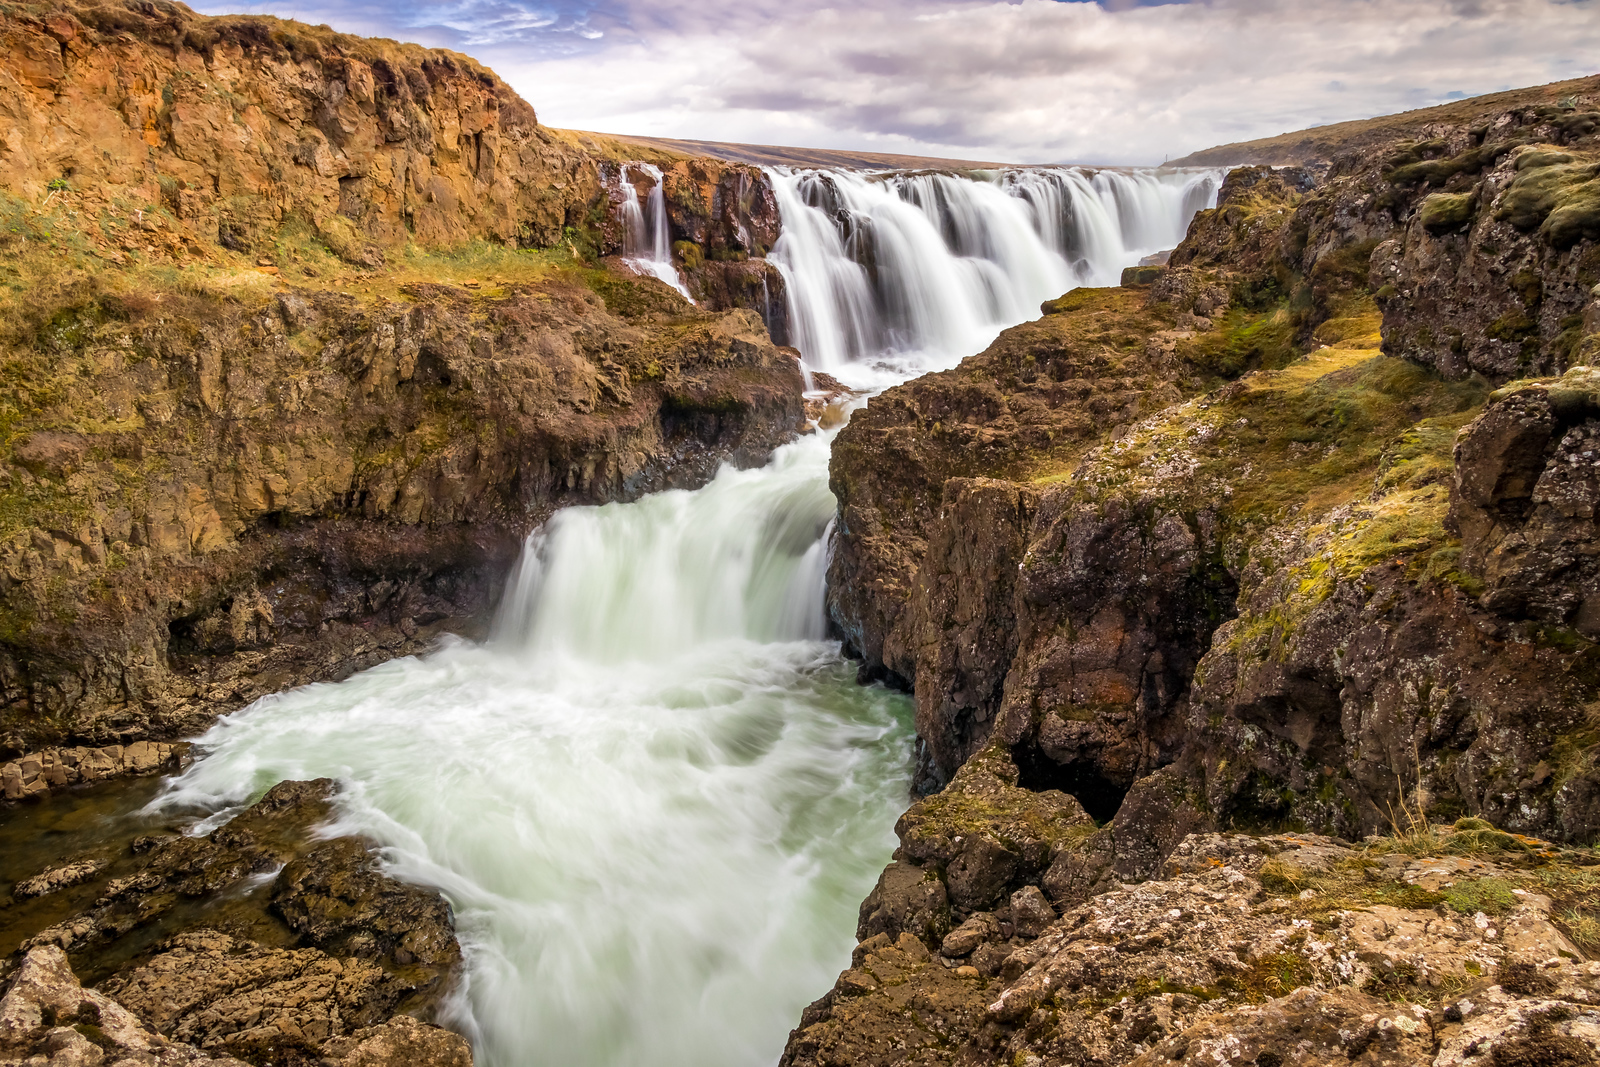 Waterfall (Foss) in North Iceland near Varmahlíð